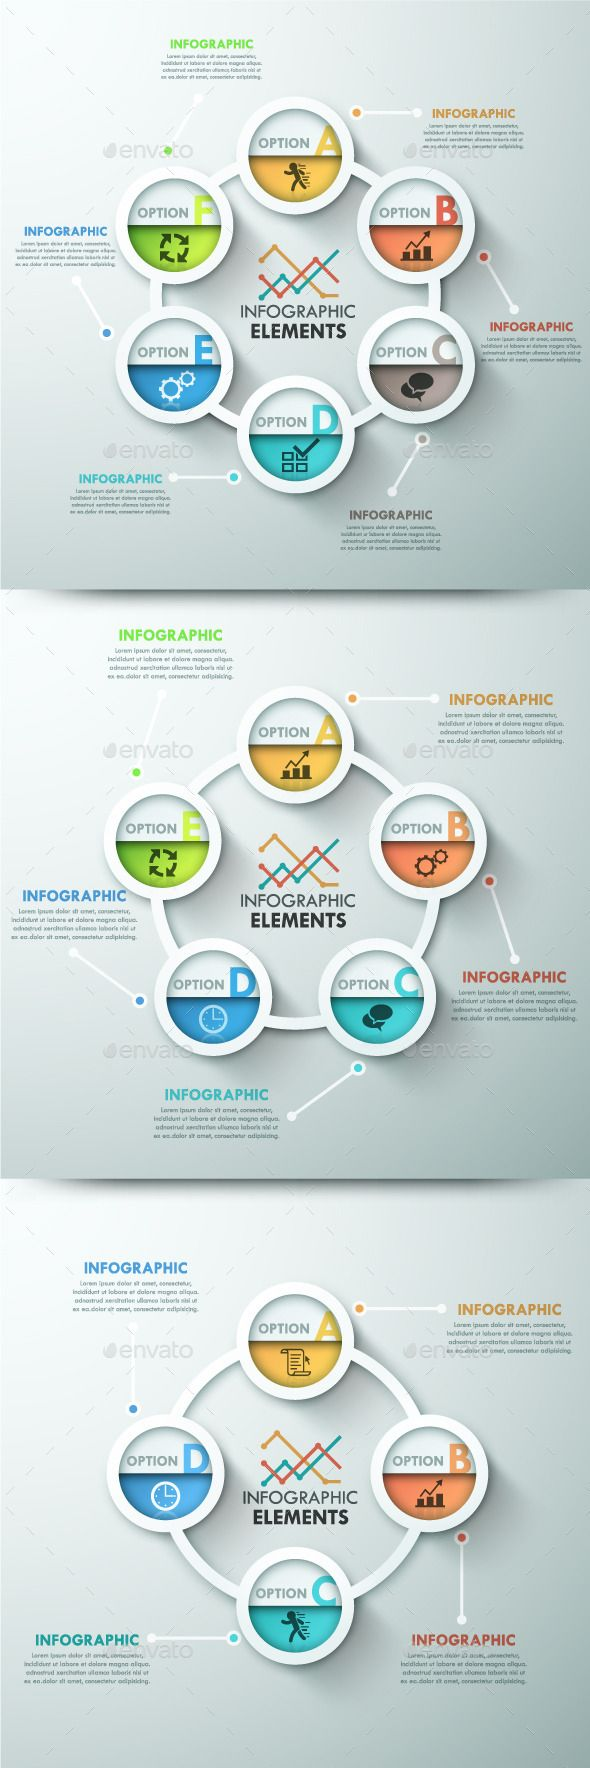 Modern Infographic Template #design Download: http://graphicriver.net/item/modern-infographic-template-3-items/10759146?ref=ksioks